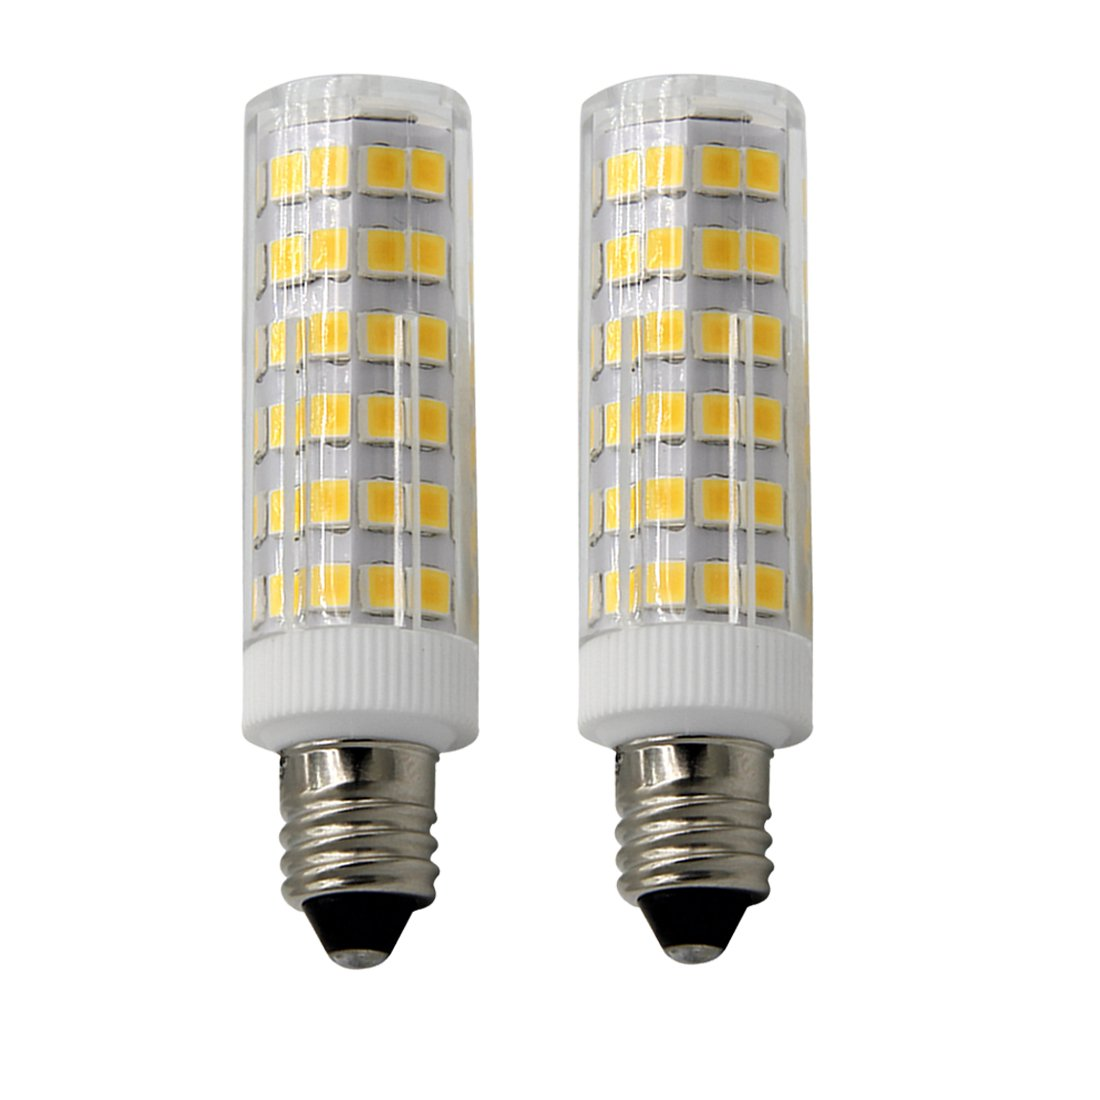 55-Watt T4 E11 Halogen Bulb Pack of 2 Replaces T4 //T3 JD Type Clear E11 Light Bulb xiaominilight E11 LED Bulbs-Mini Candelabra Base 120 Volt,Soft White